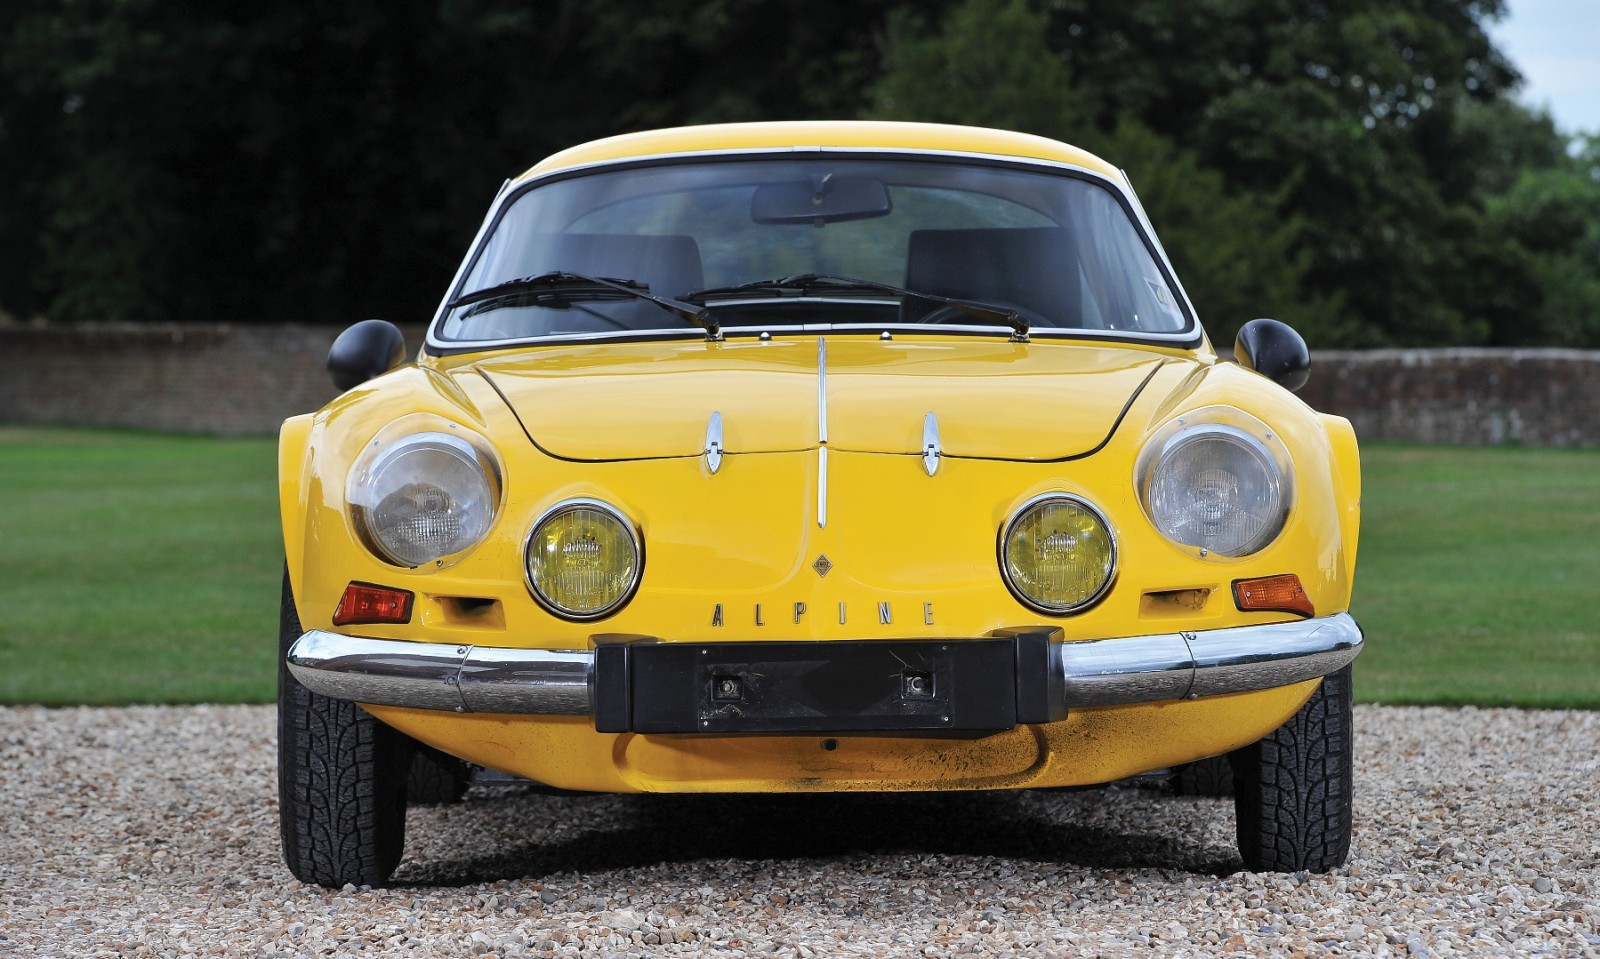 Rm London Highlights Gallery - 1973 Alpine A110 Berlinette 16